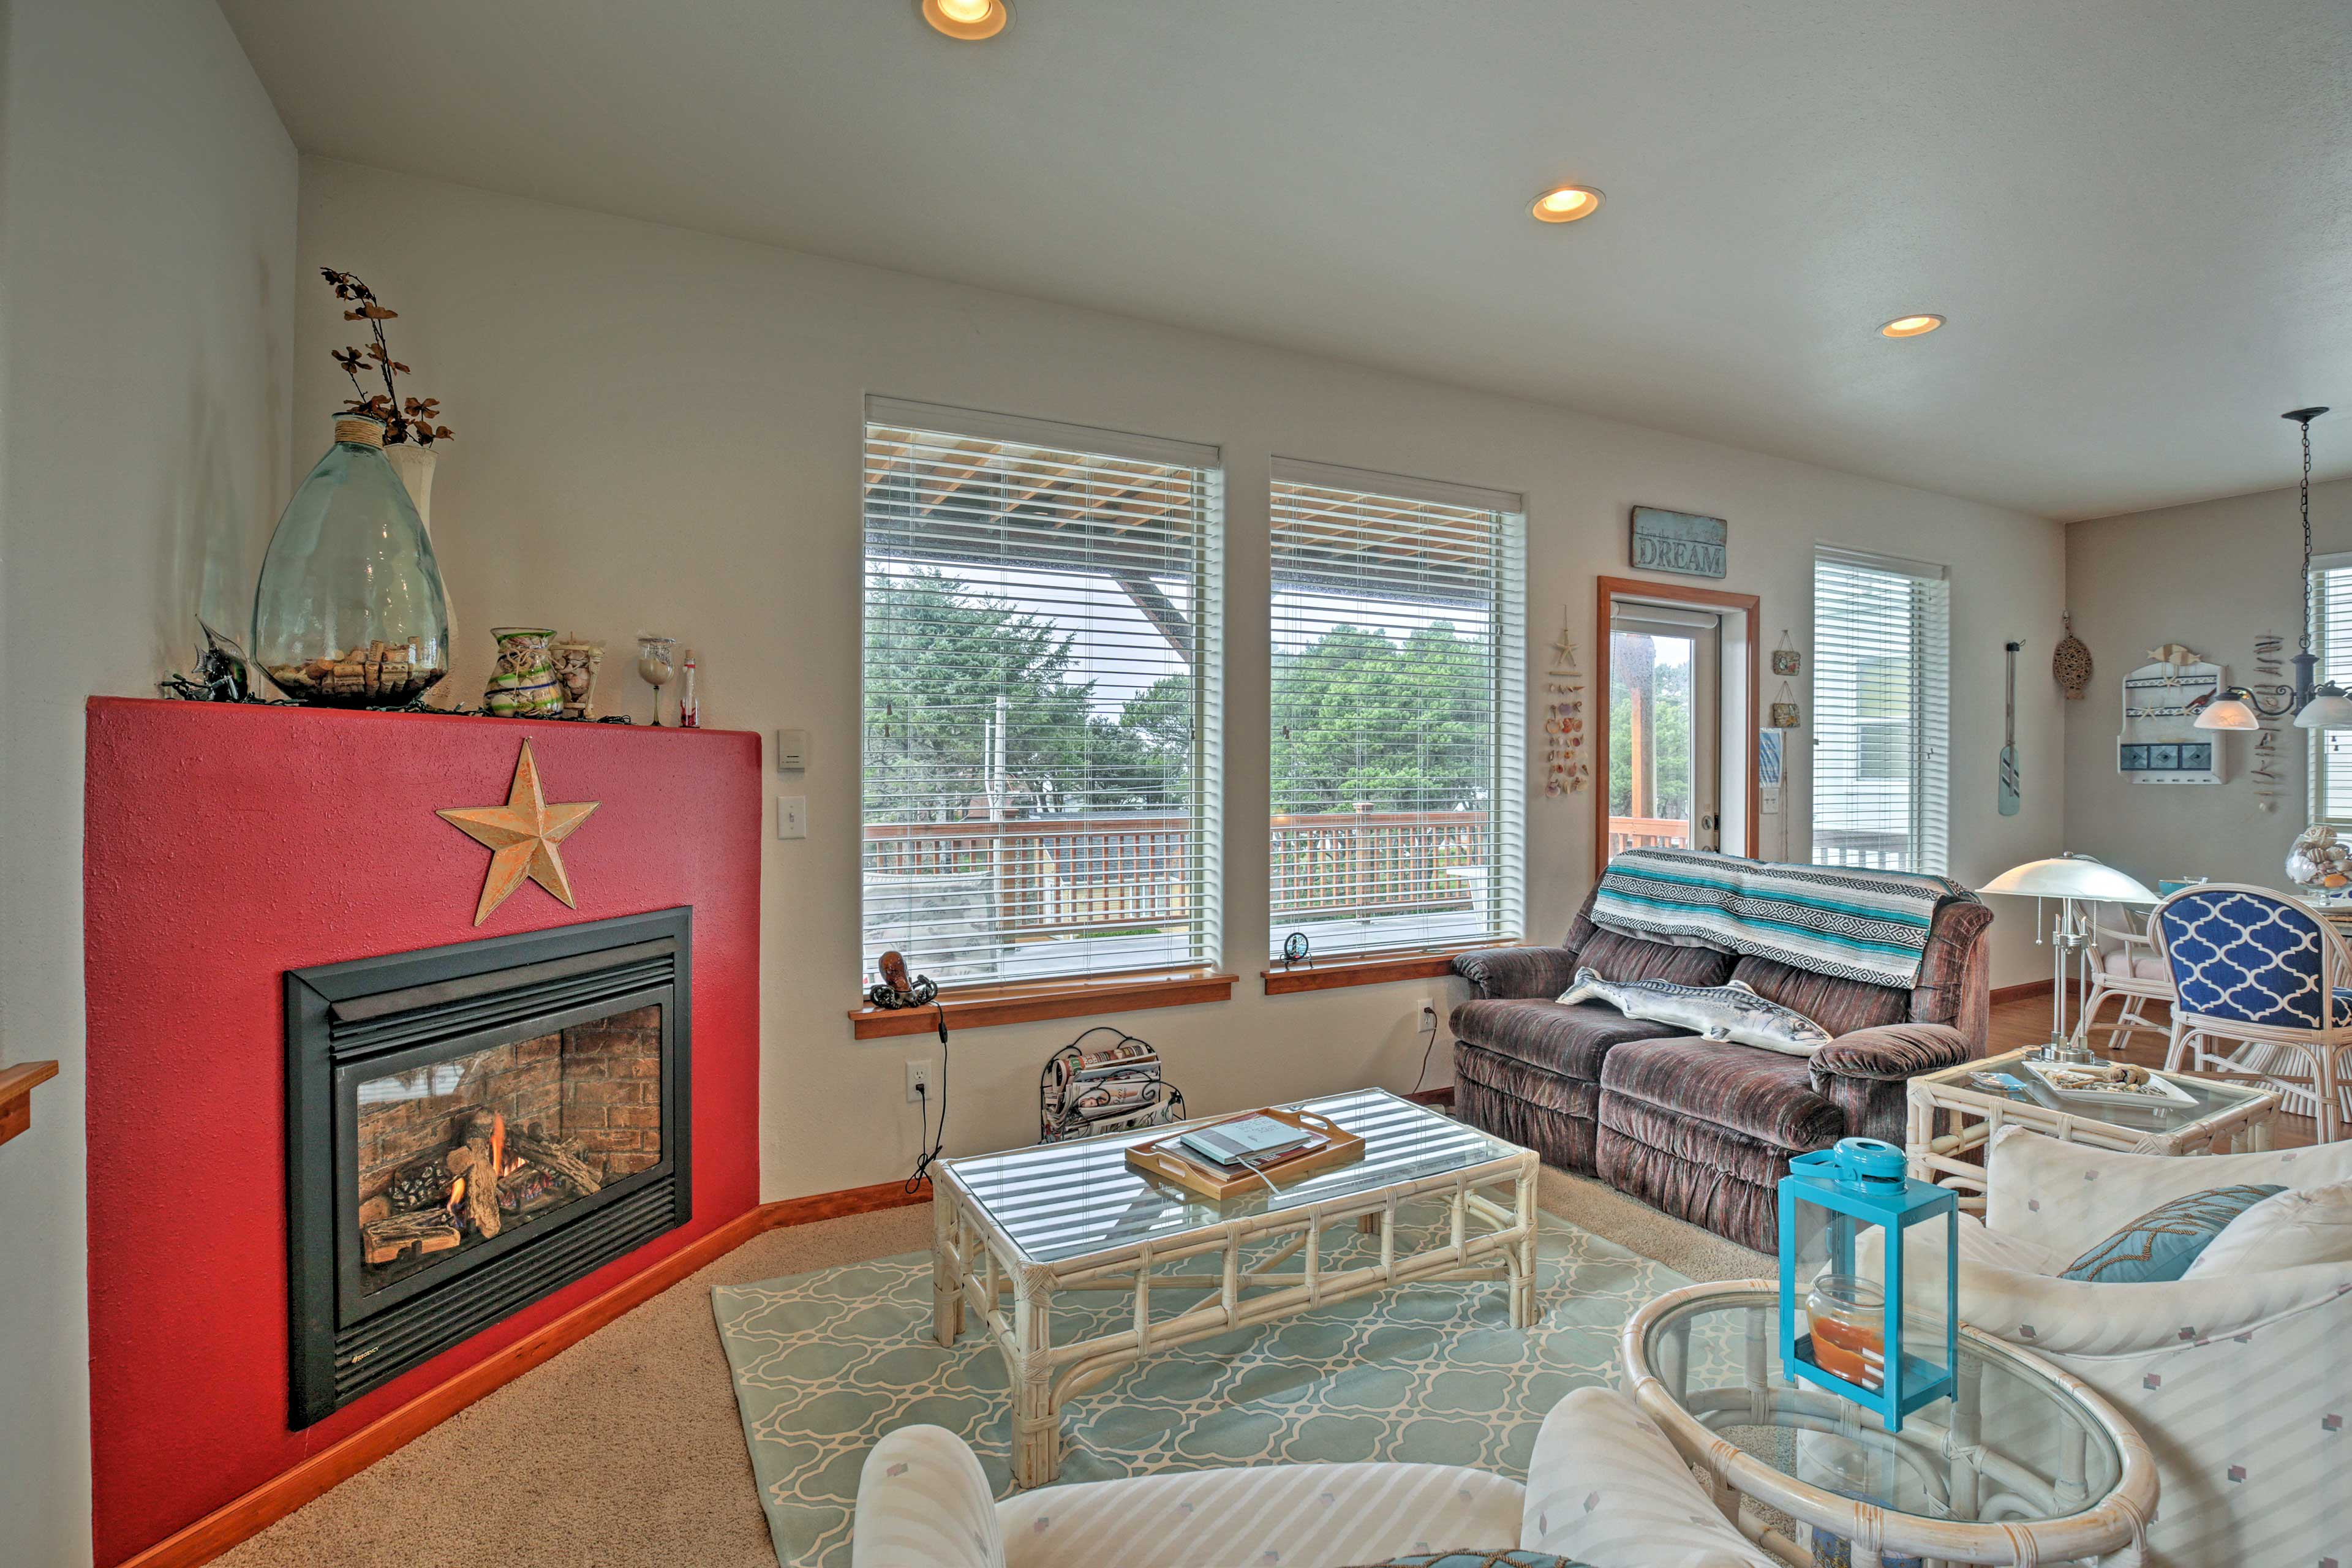 Cozy up inside next to the electric fireplace of this 2-bedroom, 2-bath house.